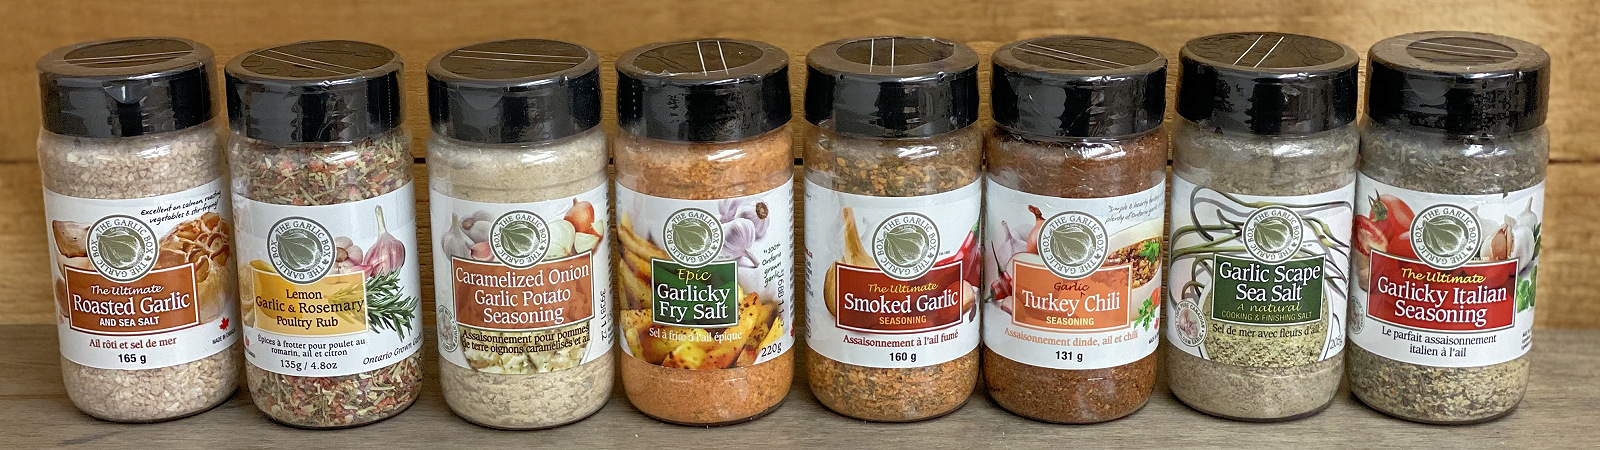 Garlic Box Seasonings